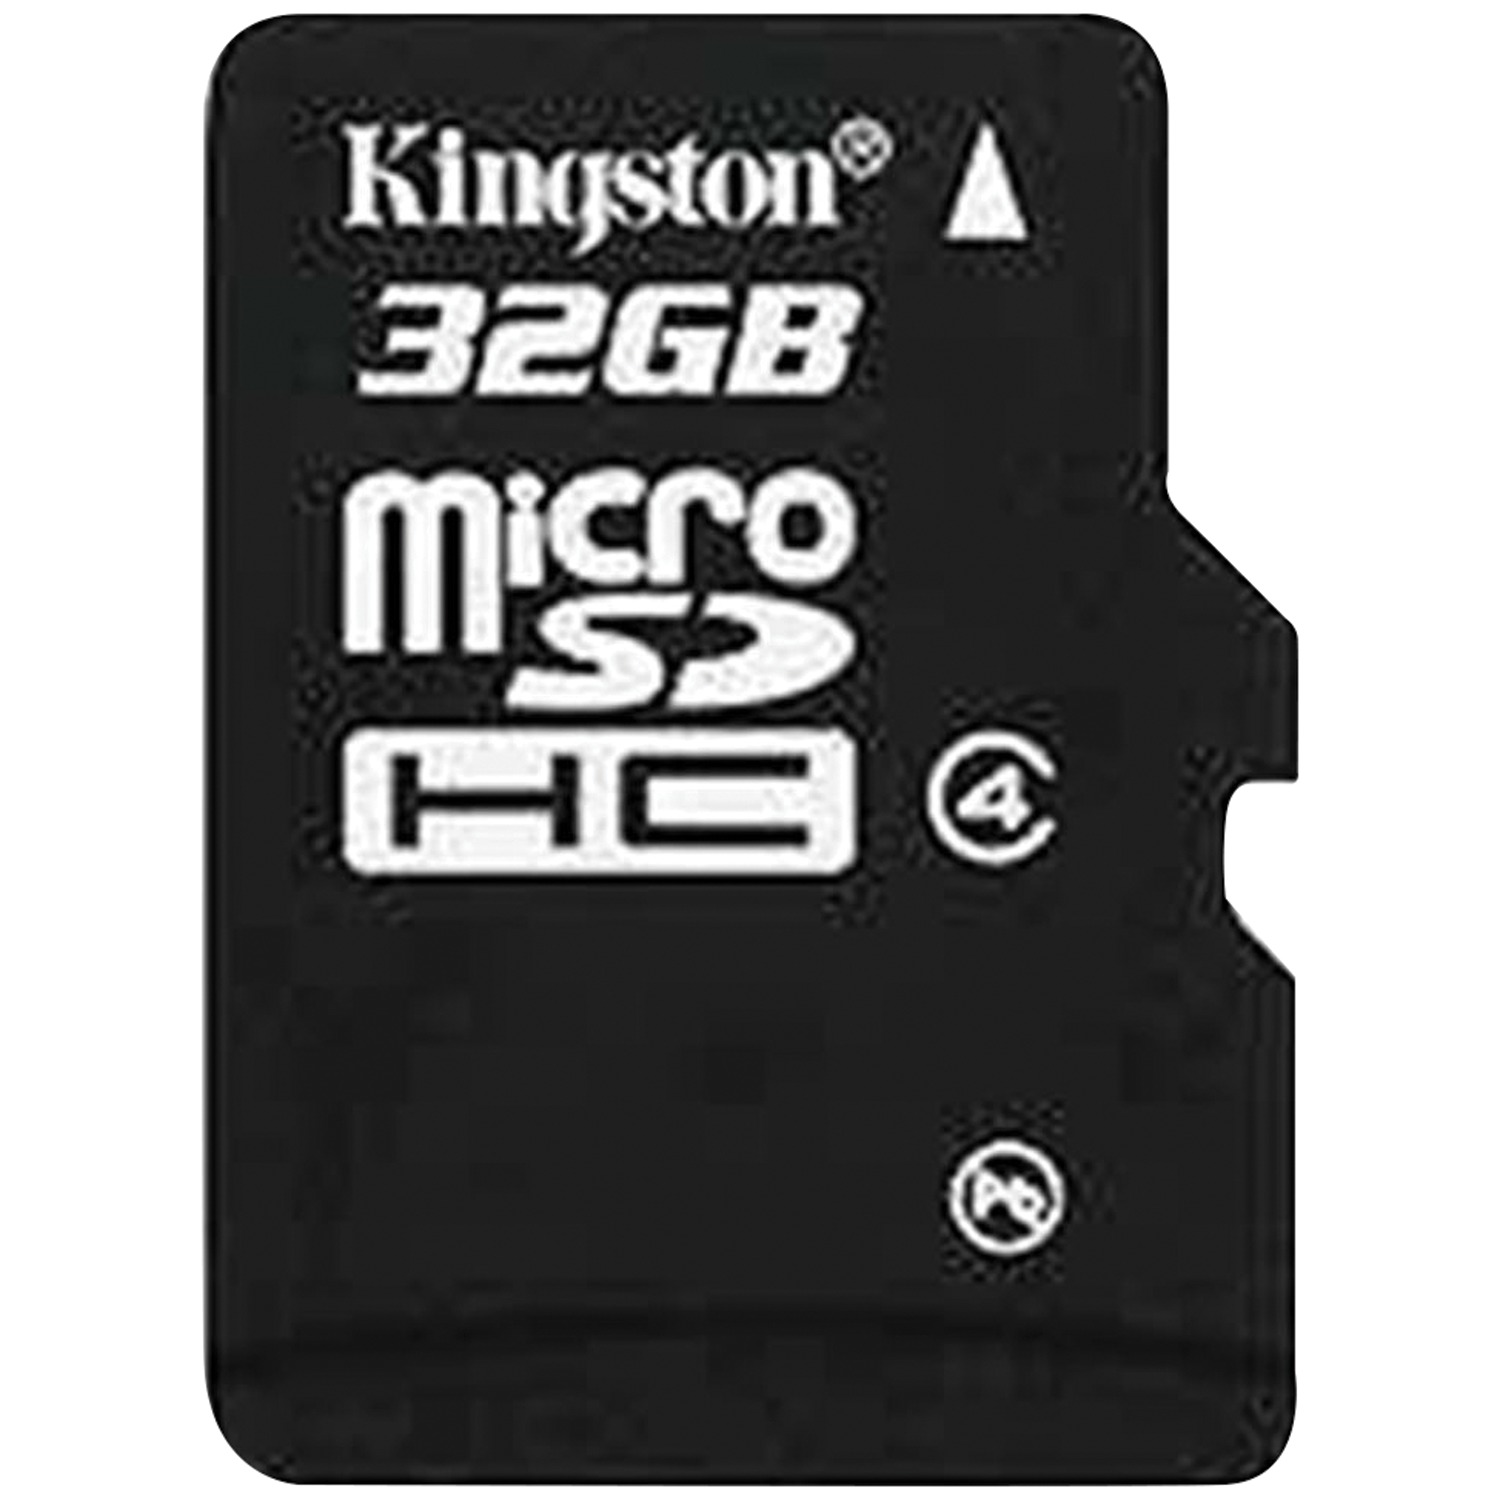 Kingston SDC4/32GB Class 4 microSDHC Card with Adapter (32GB with Adapter)